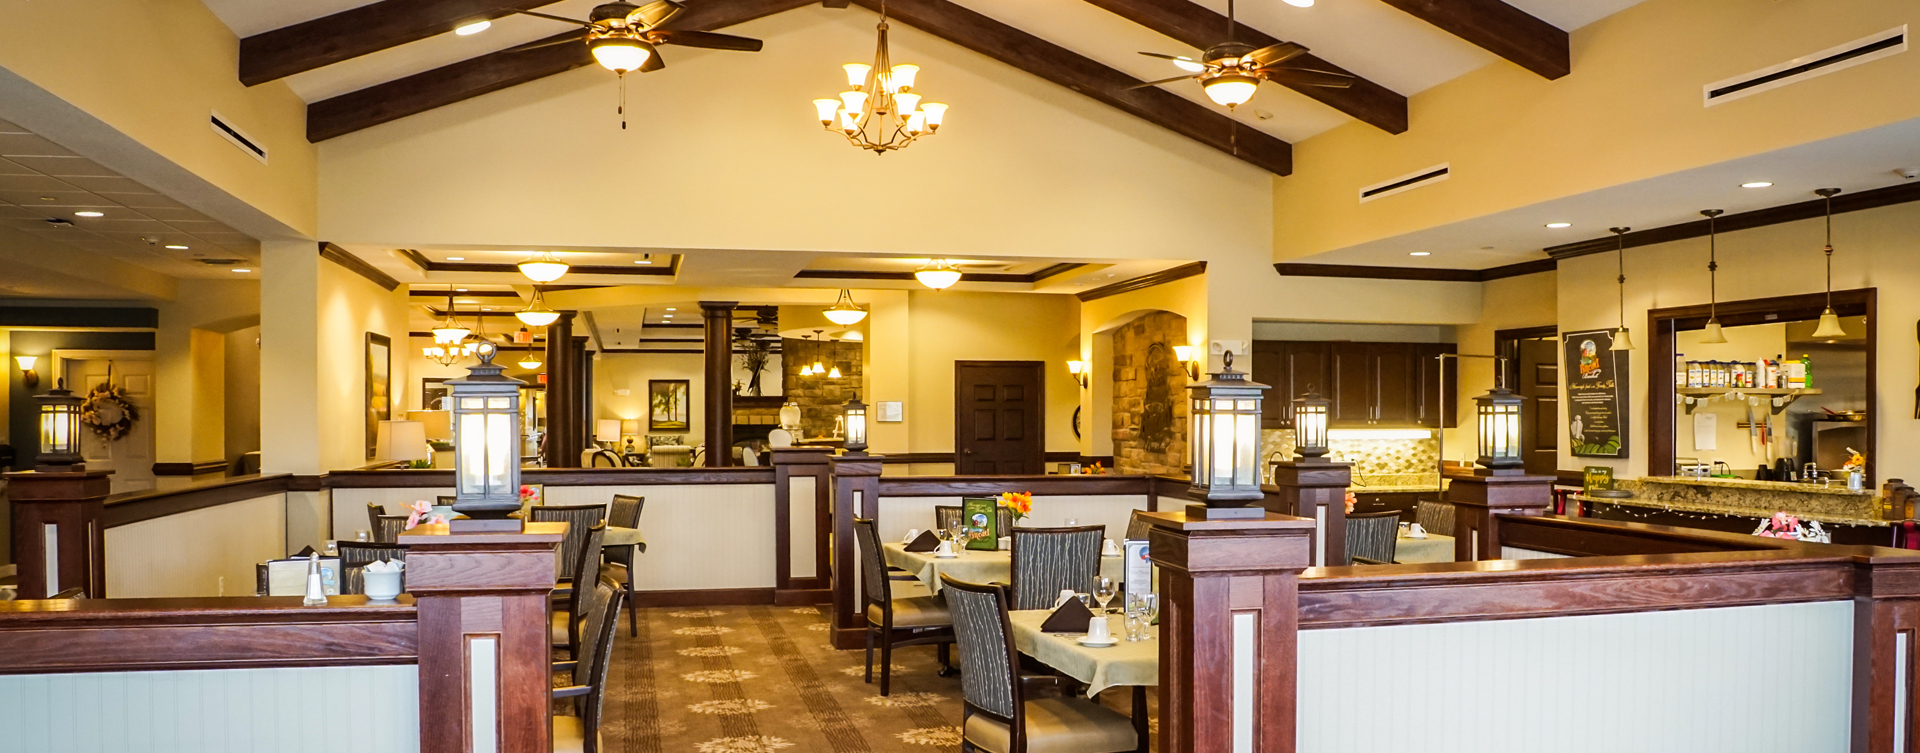 Enjoy homestyle food with made-from-scratch recipes in our dining room at Bickford of Aurora